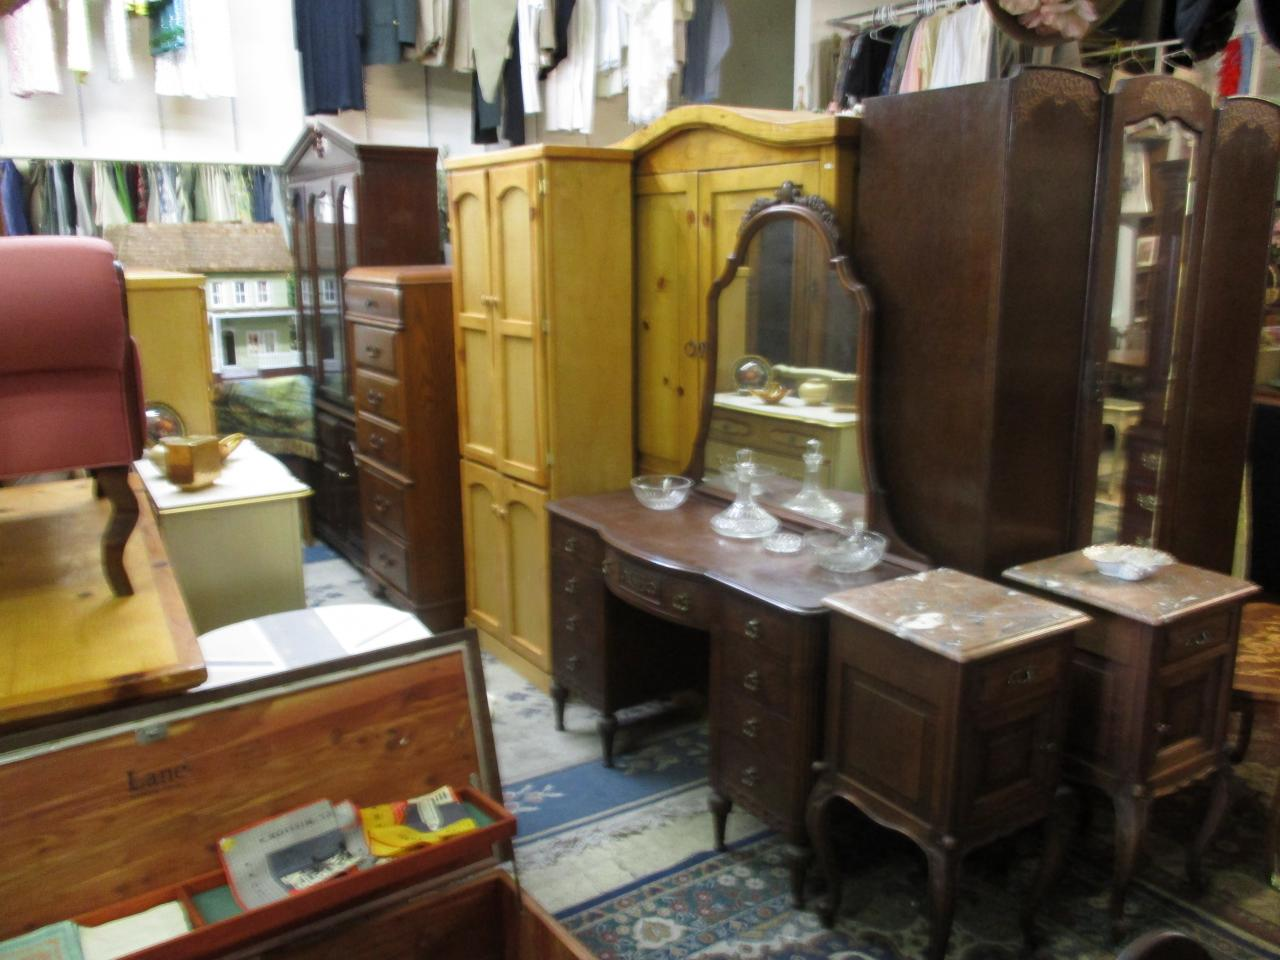 ... Used furniture Antique Mahogany Vanity ... - Cheap - Thrift Shop @ Cheap, 25408 Narbonne Ave., Lomita, Torrance